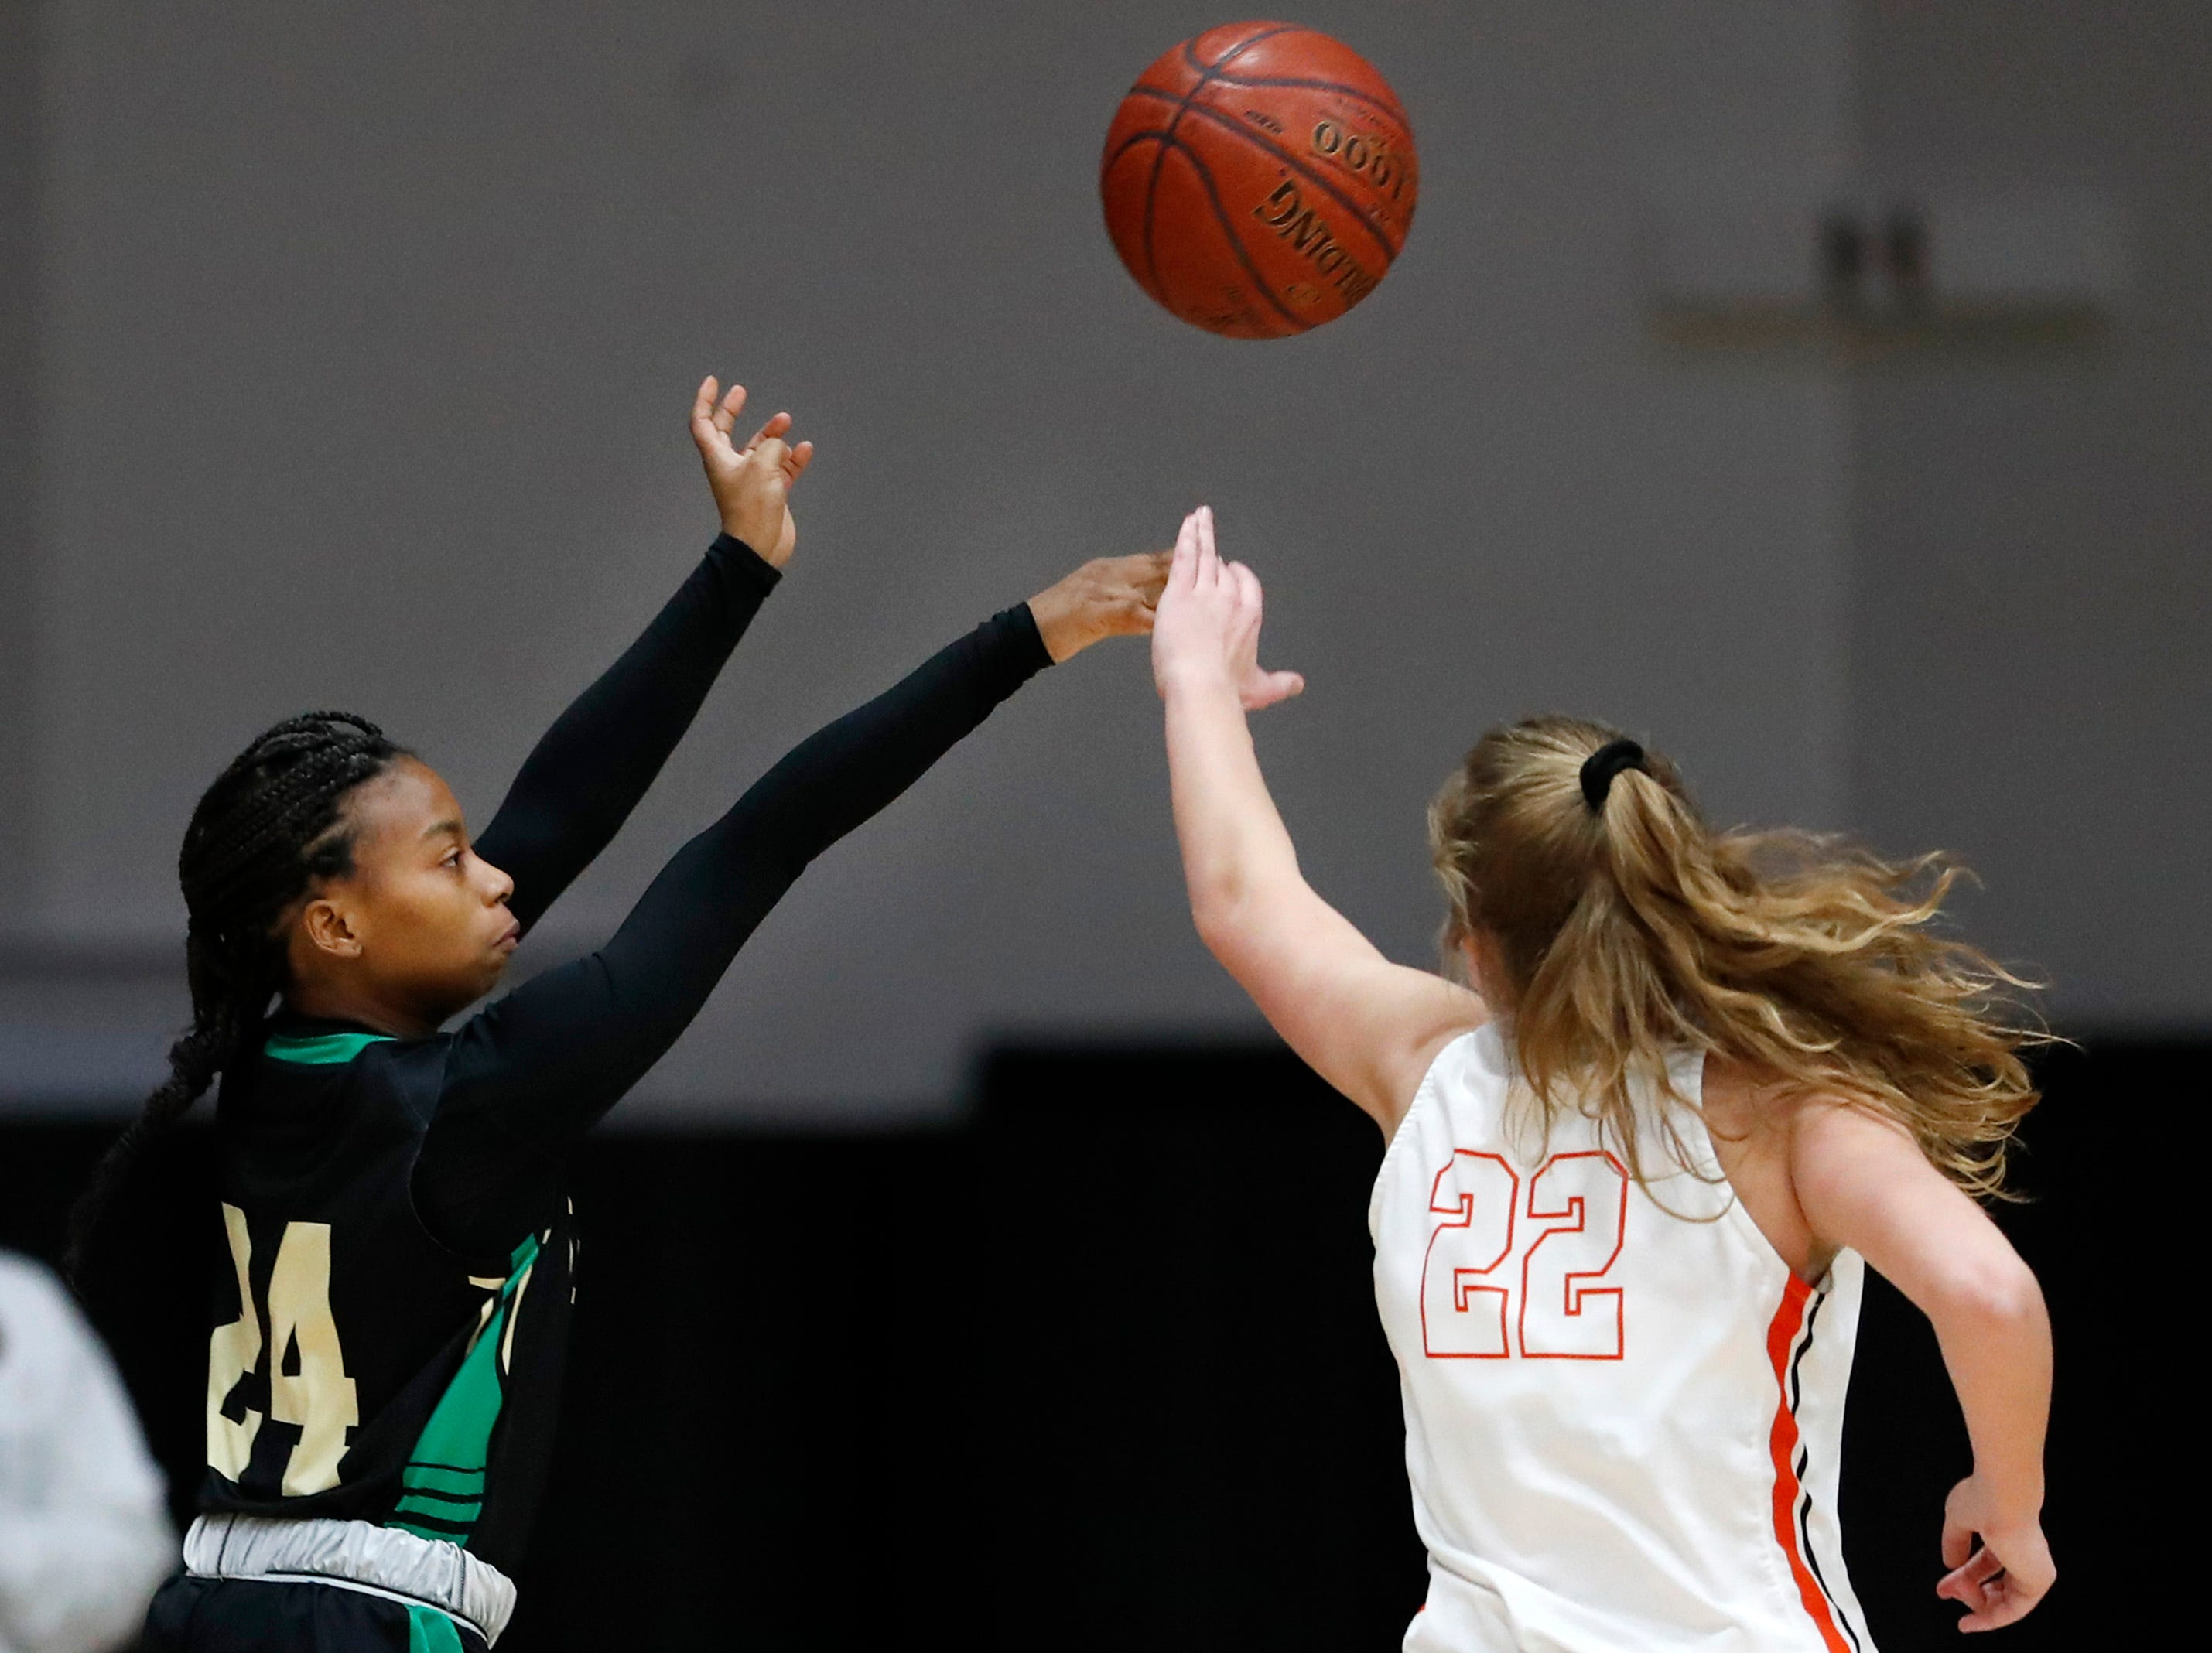 Oshkosh North High SchoolÕs Nydia Griffin gets a shot past Kaukauna High School's Aspen Novy Tuesday, Feb. 5, 2019, in Kaukauna, Wis.